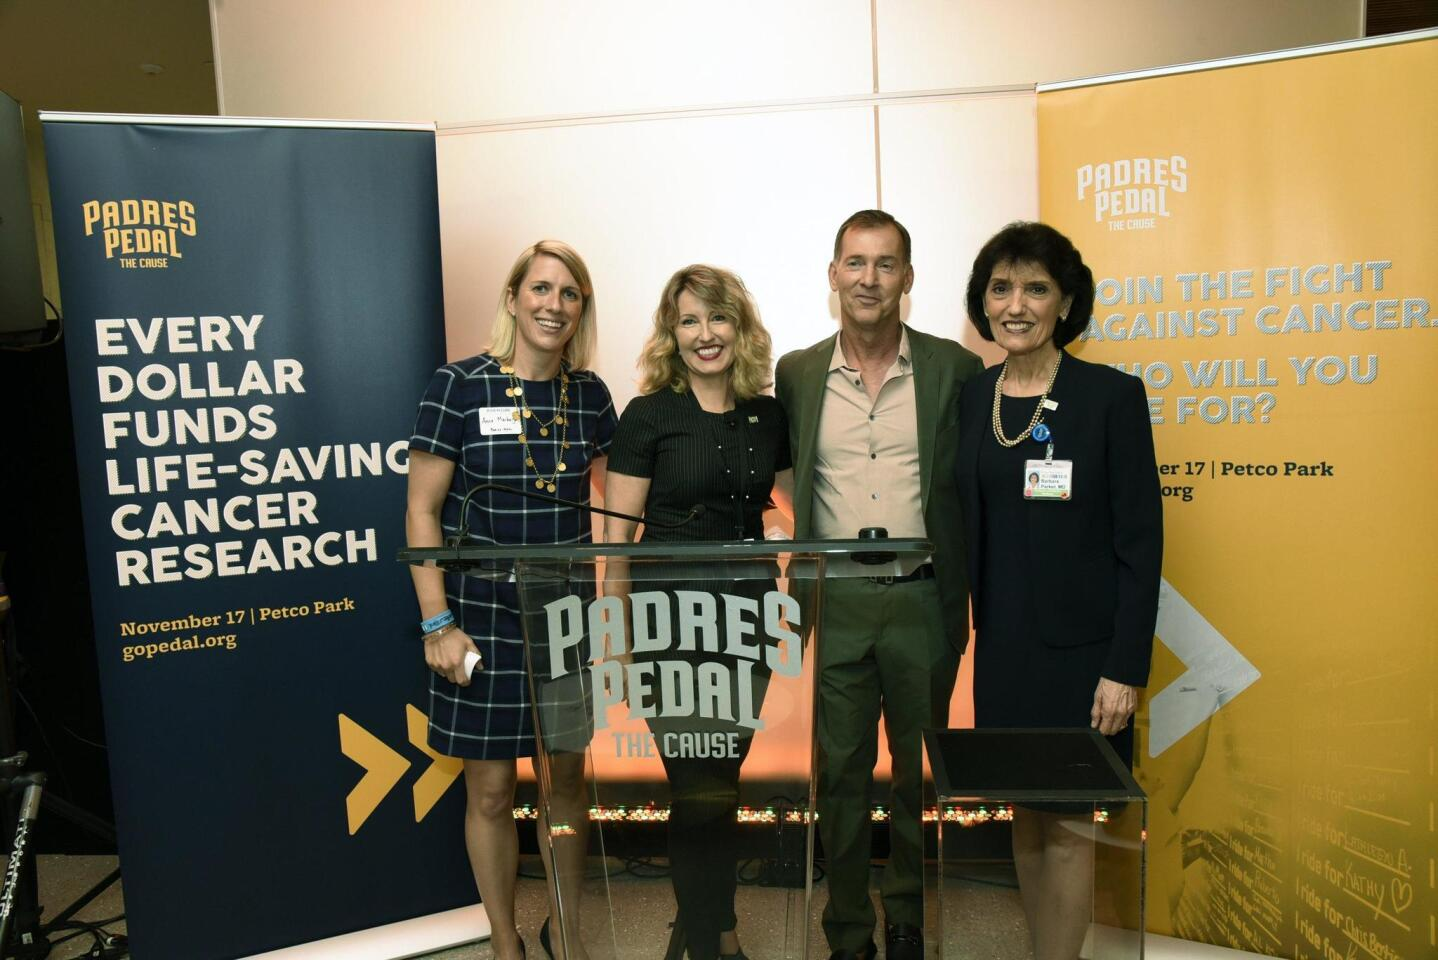 Padres Pedal the Cause Executive Director Anne Marbarger, guest speaker UCSD Moores Cancer Center Deputy Director Dr. Catriona Jamieson, Padres Pedal the Cause founder Bill Koman, guest speaker Dr. Barbara Parker